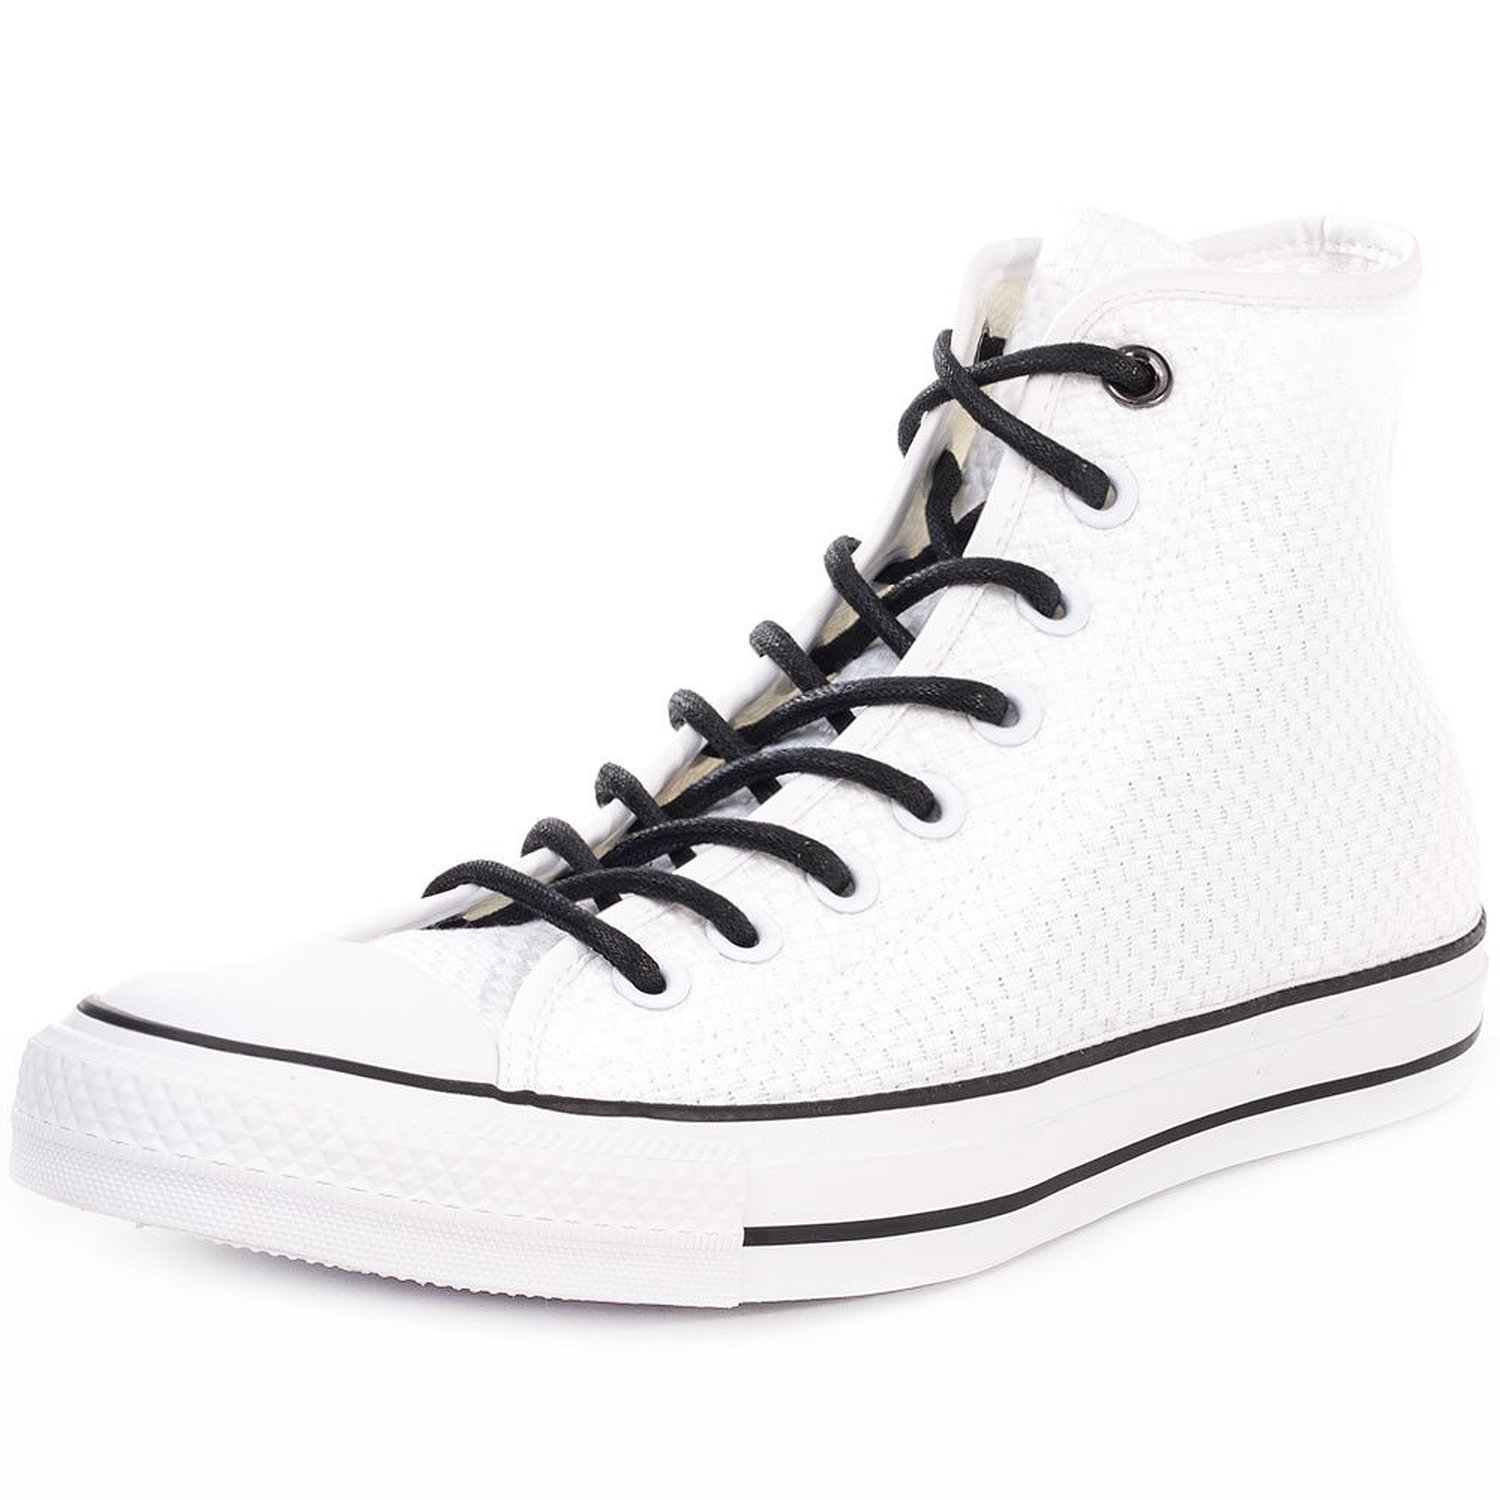 0e4ba0ecf912 Get Quotations · Mens Unisex Chuck Taylor All Star HI Top Fashion Sneaker  Shoe